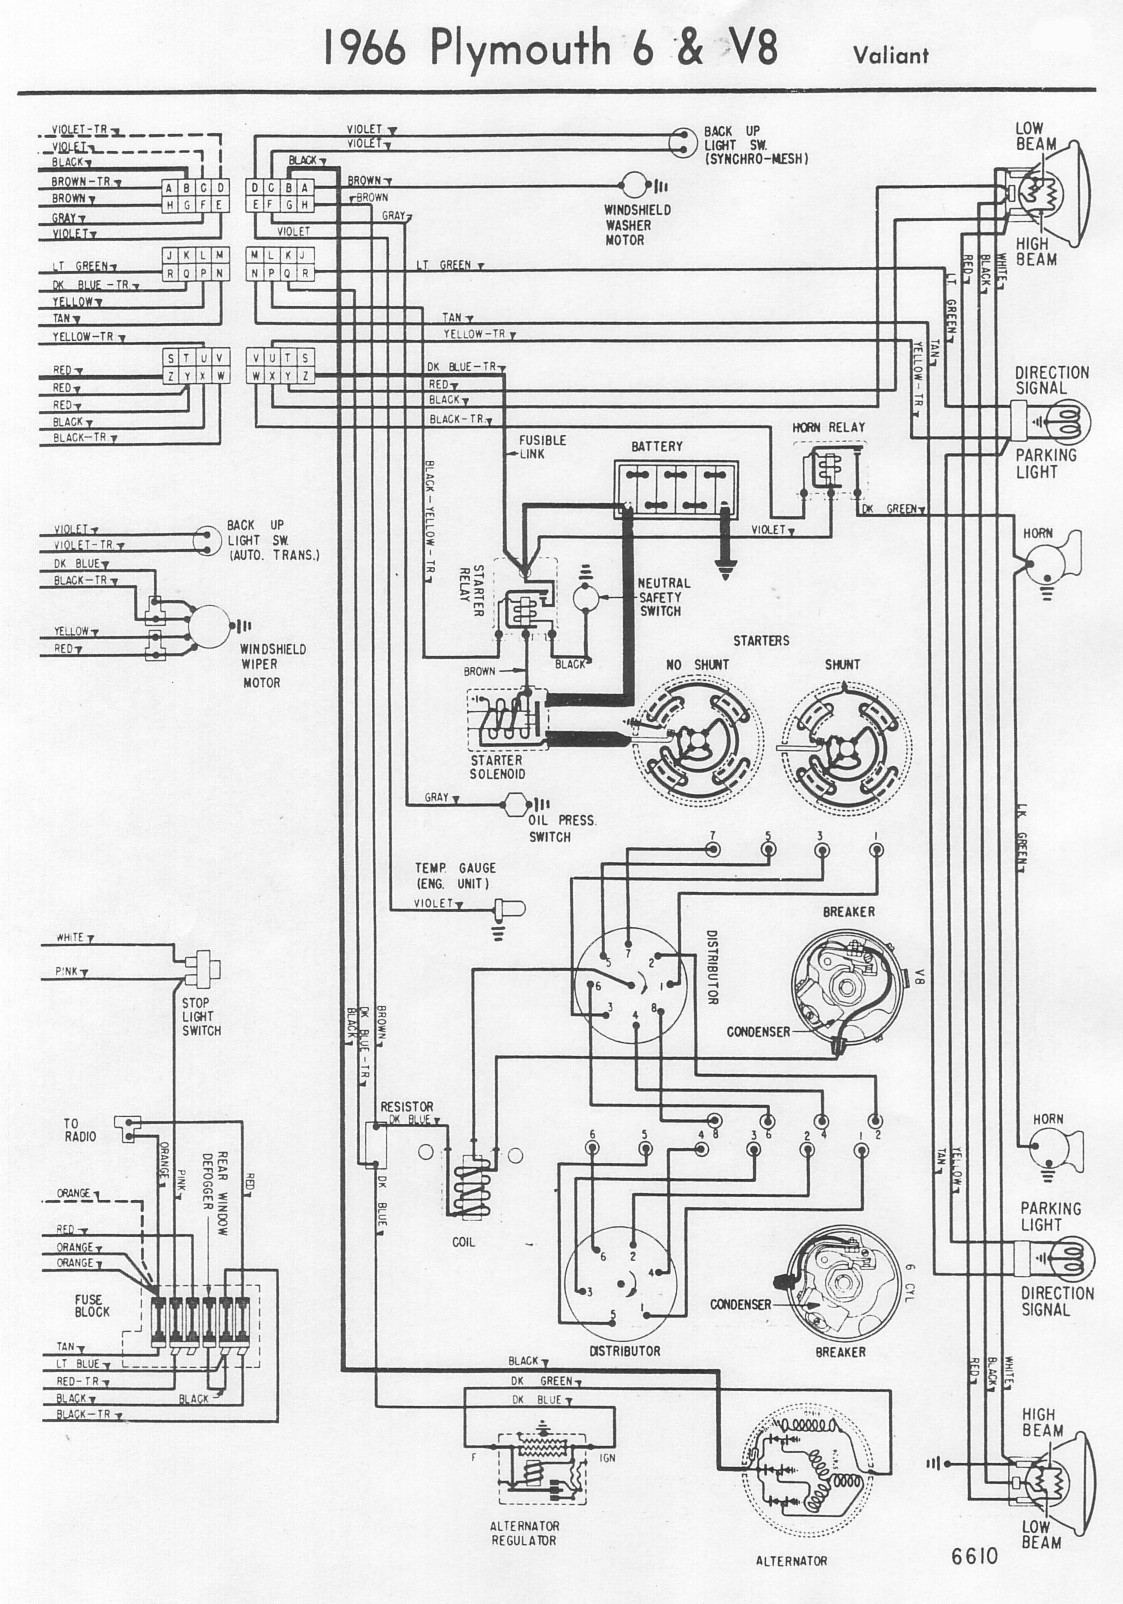 66ValiantB wiring diagrams plymouth wiring diagrams at bayanpartner.co